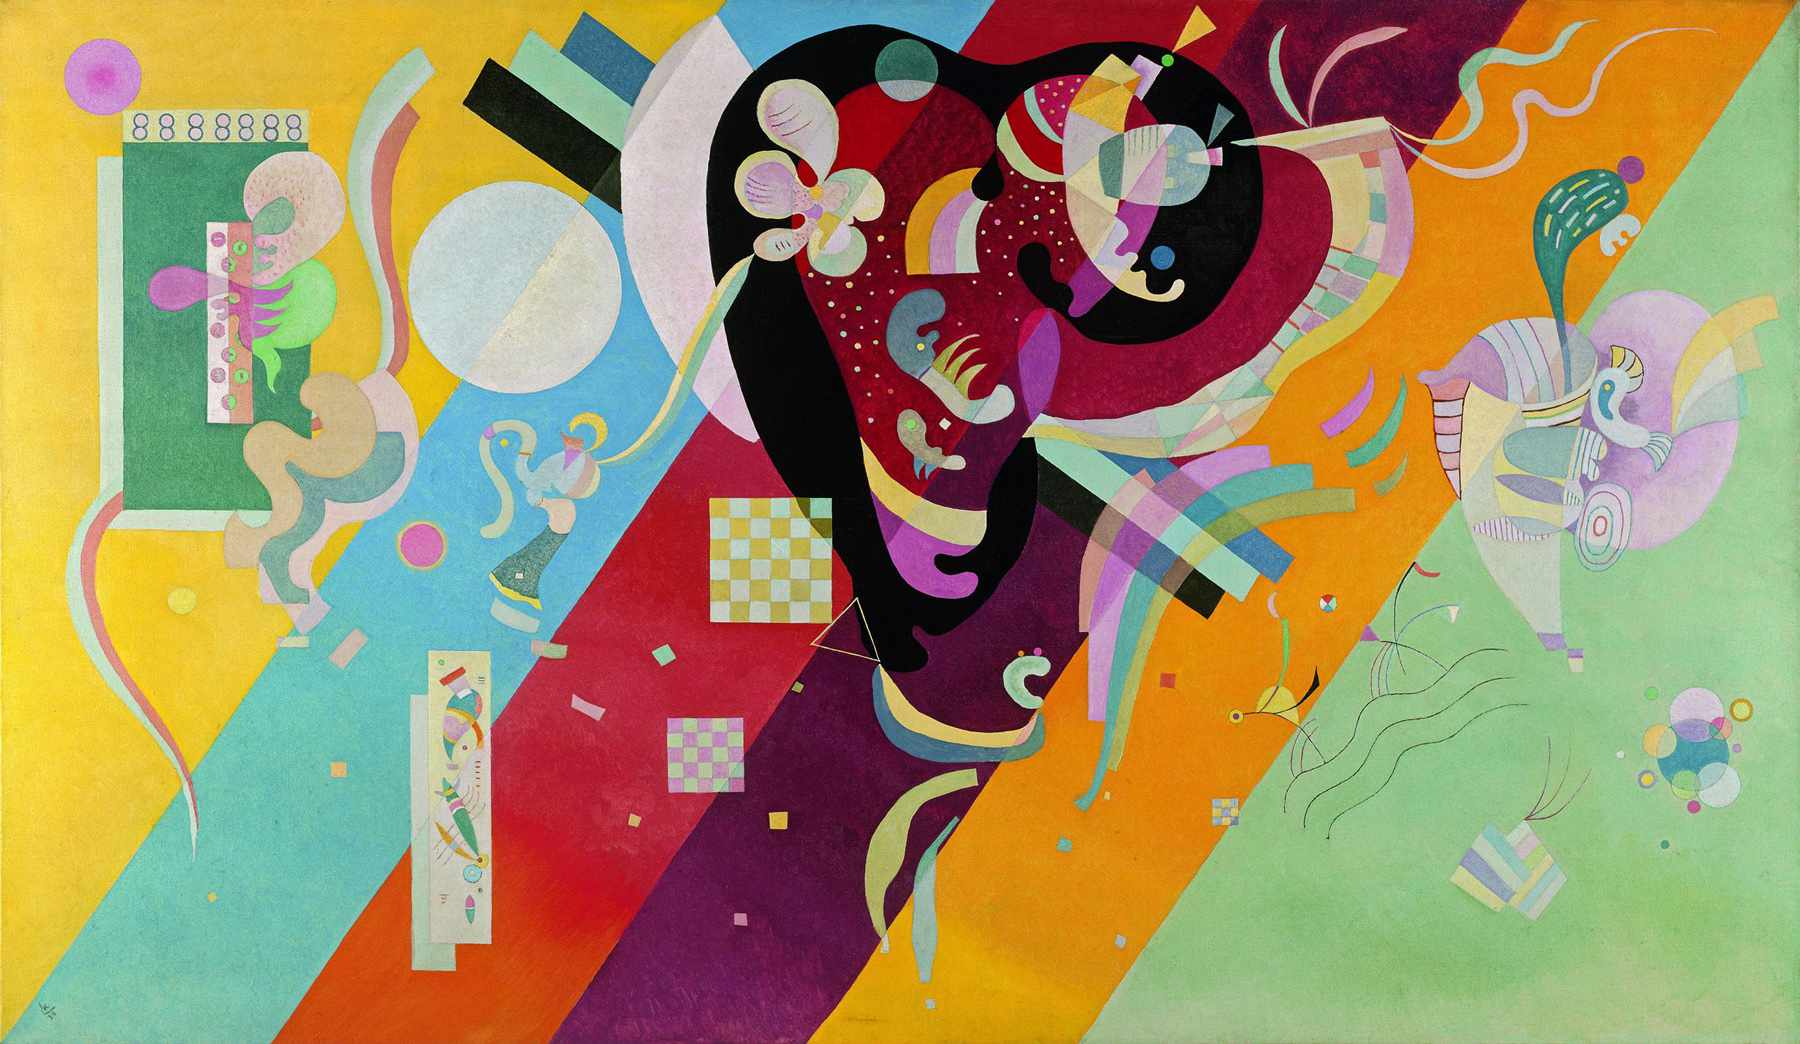 Wassily Kandinsky (Russian, 1866-1944) Wassily Kandinsky (Russian, 1866-1944). Composition IX, 1936. Oil on canvas. 44 5/8 x 76 3/4 in. (113.5 x 195 cm). Government purchase and attribution, 1939. Centre Pompidou, Musée national d'art moderne, Paris.